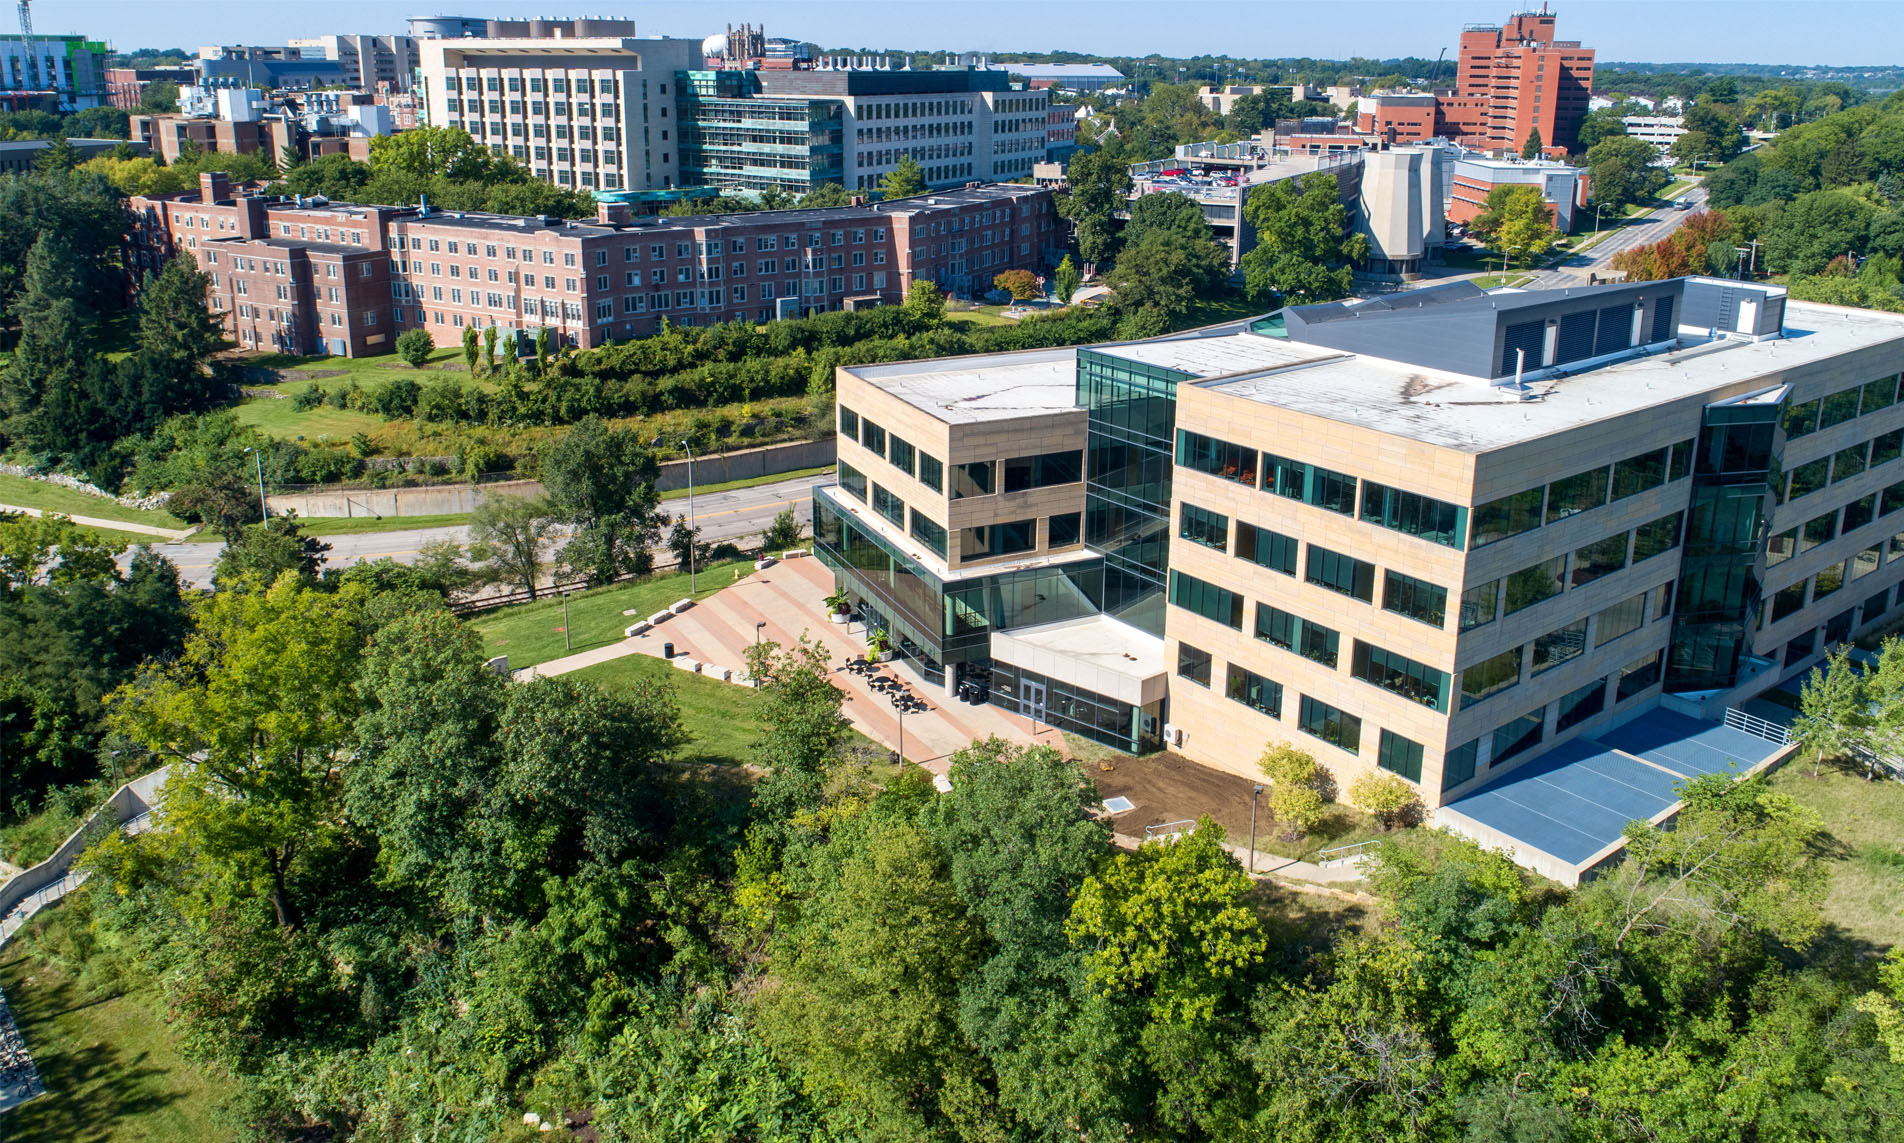 Aerial view of the College of Public Health Building.